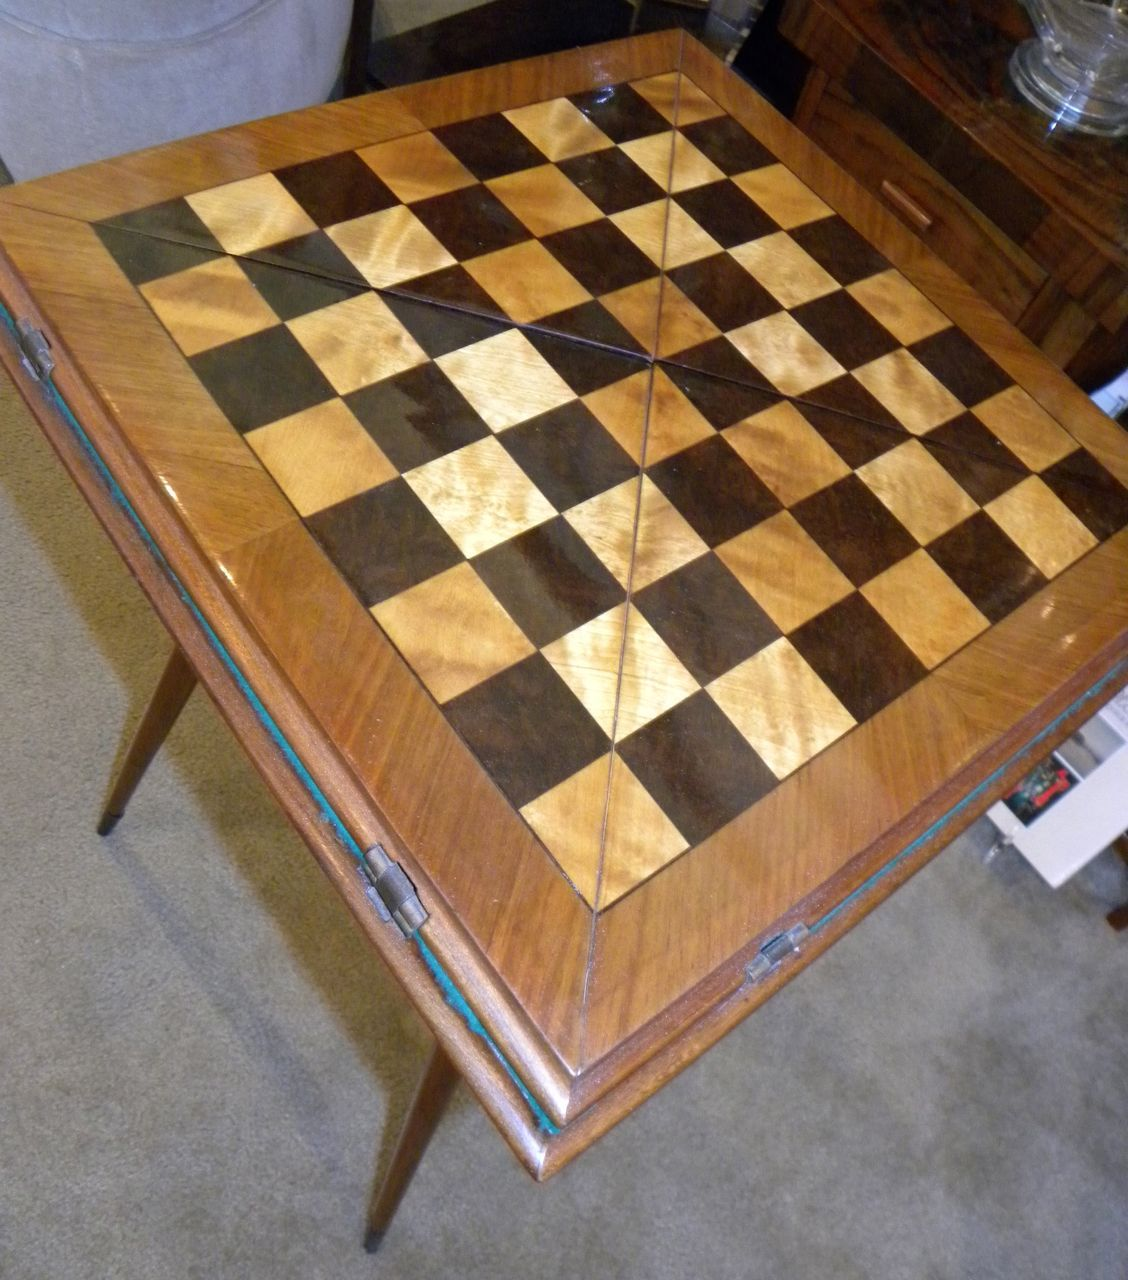 Fabulous Art Deco Game and Card Table Bars Art Deco